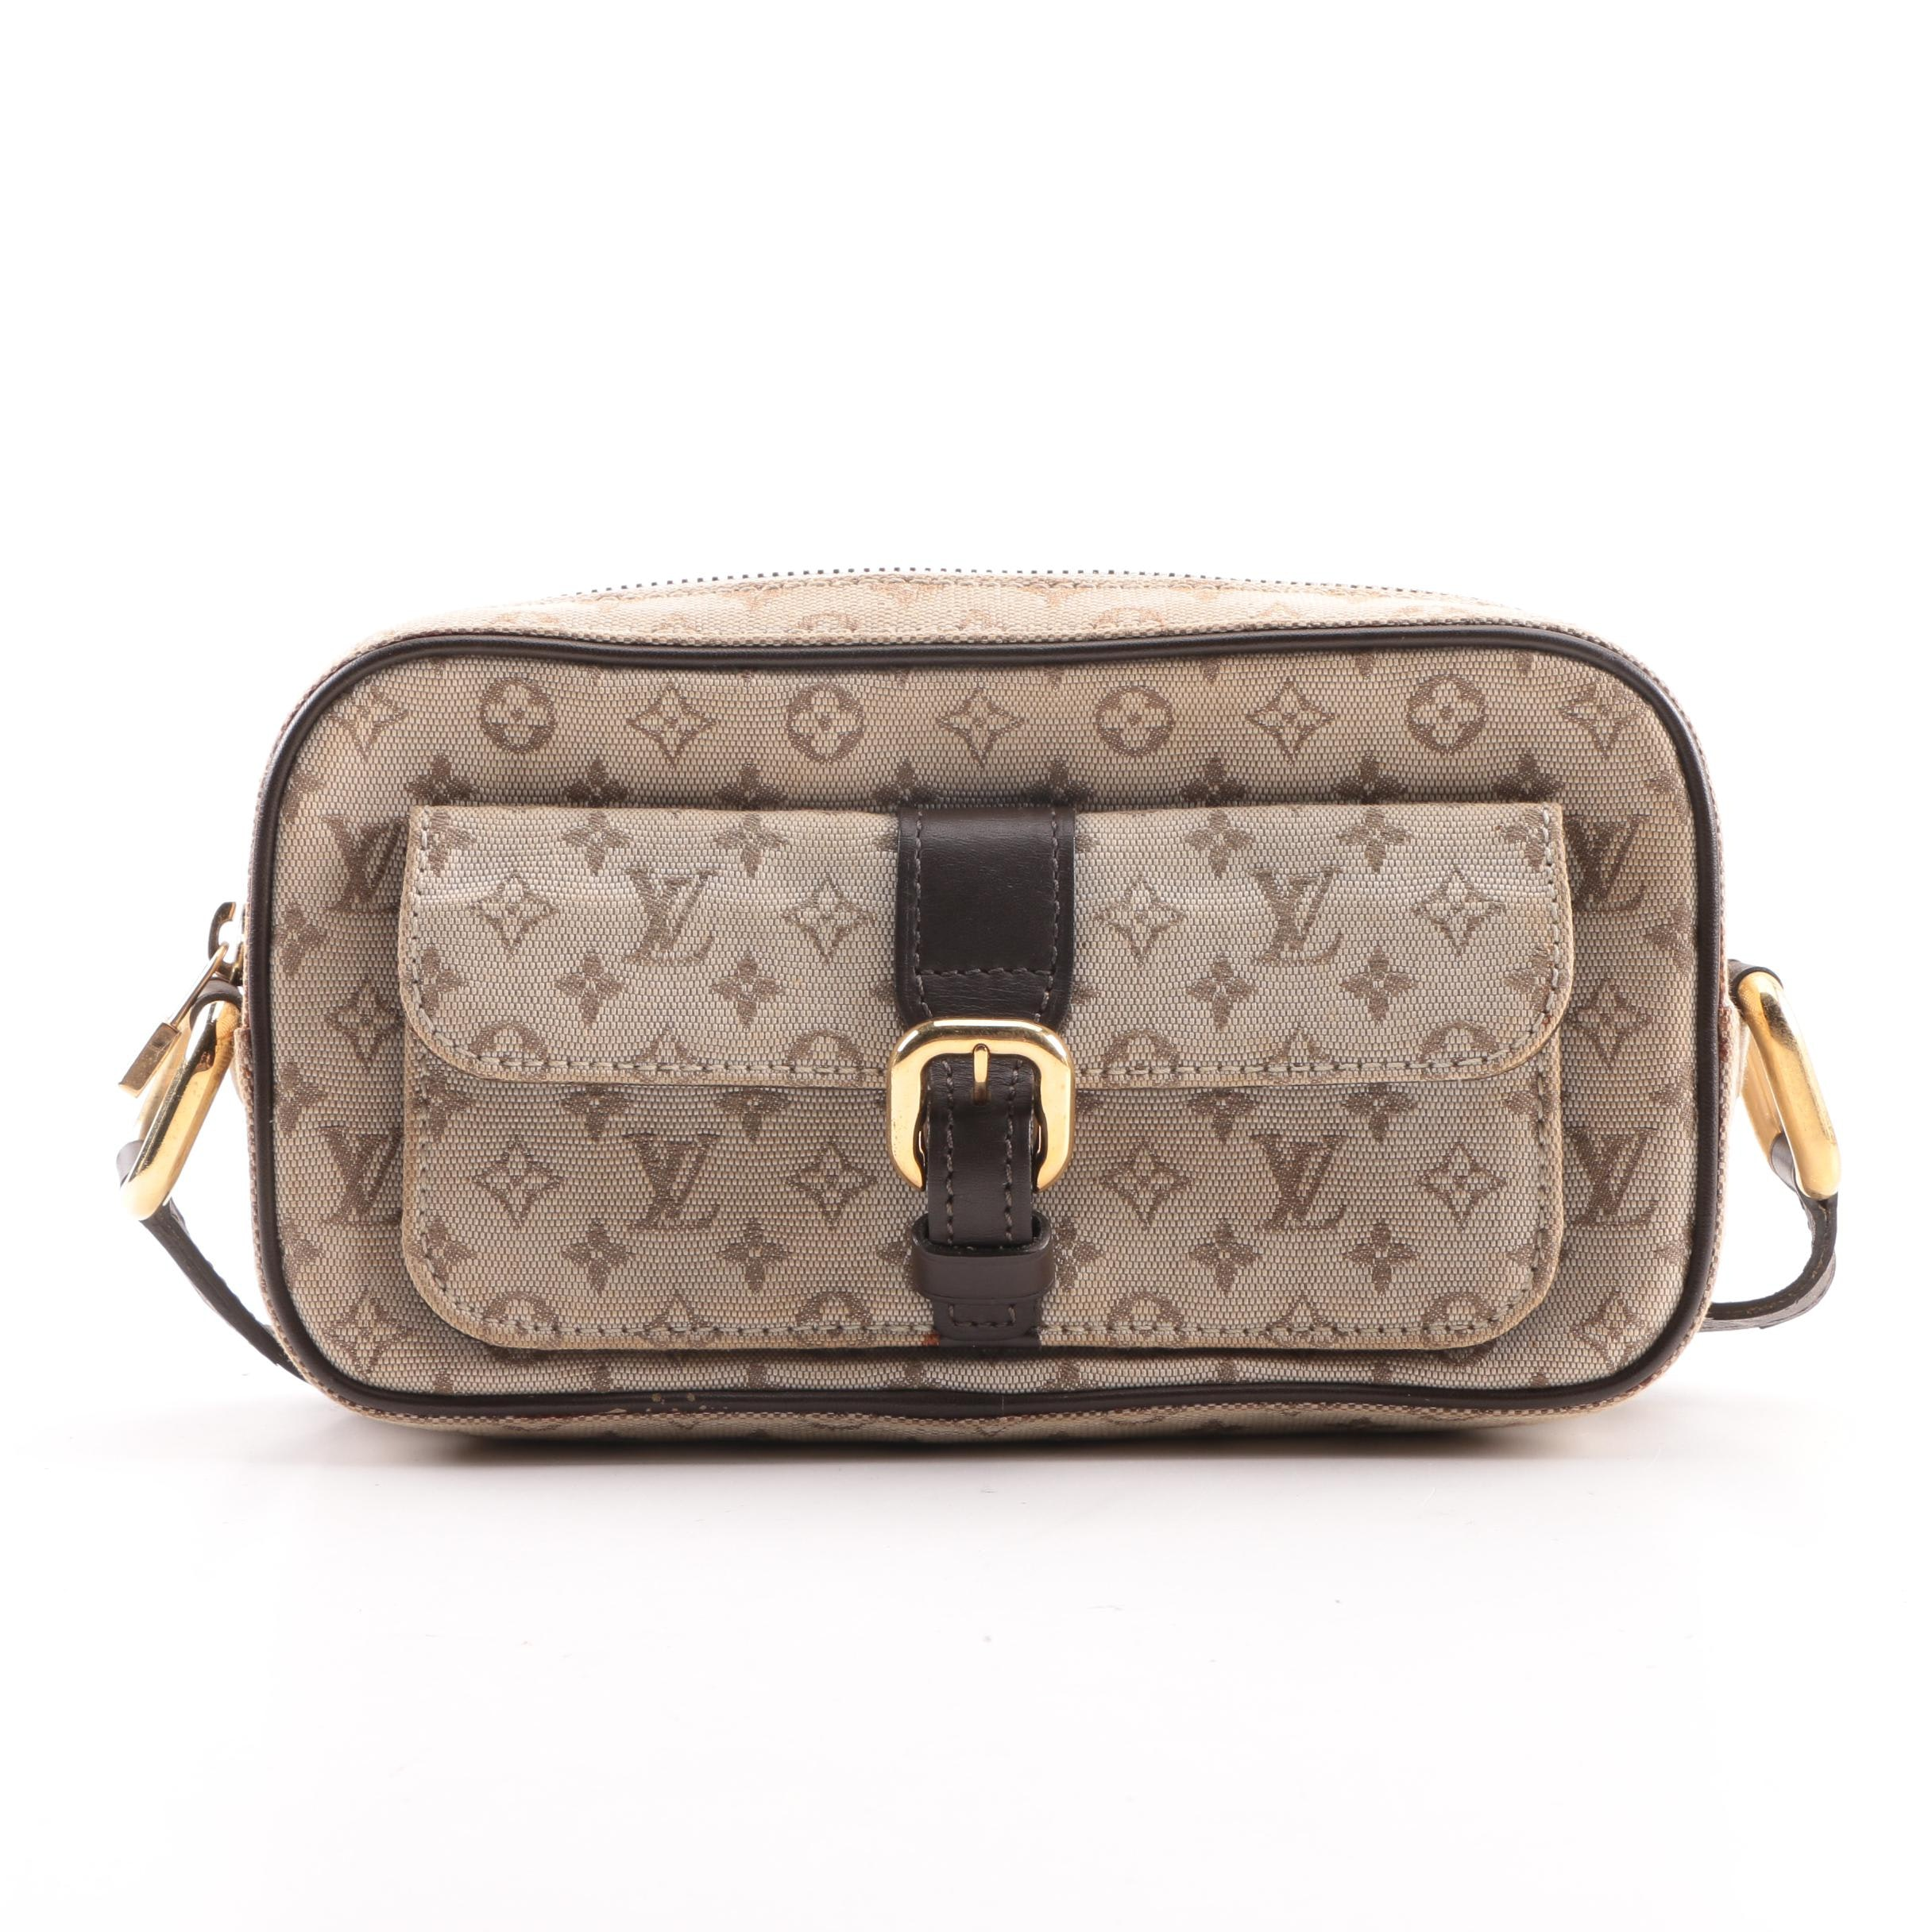 2001 Louis Vuitton Monogram Canvas Baguette